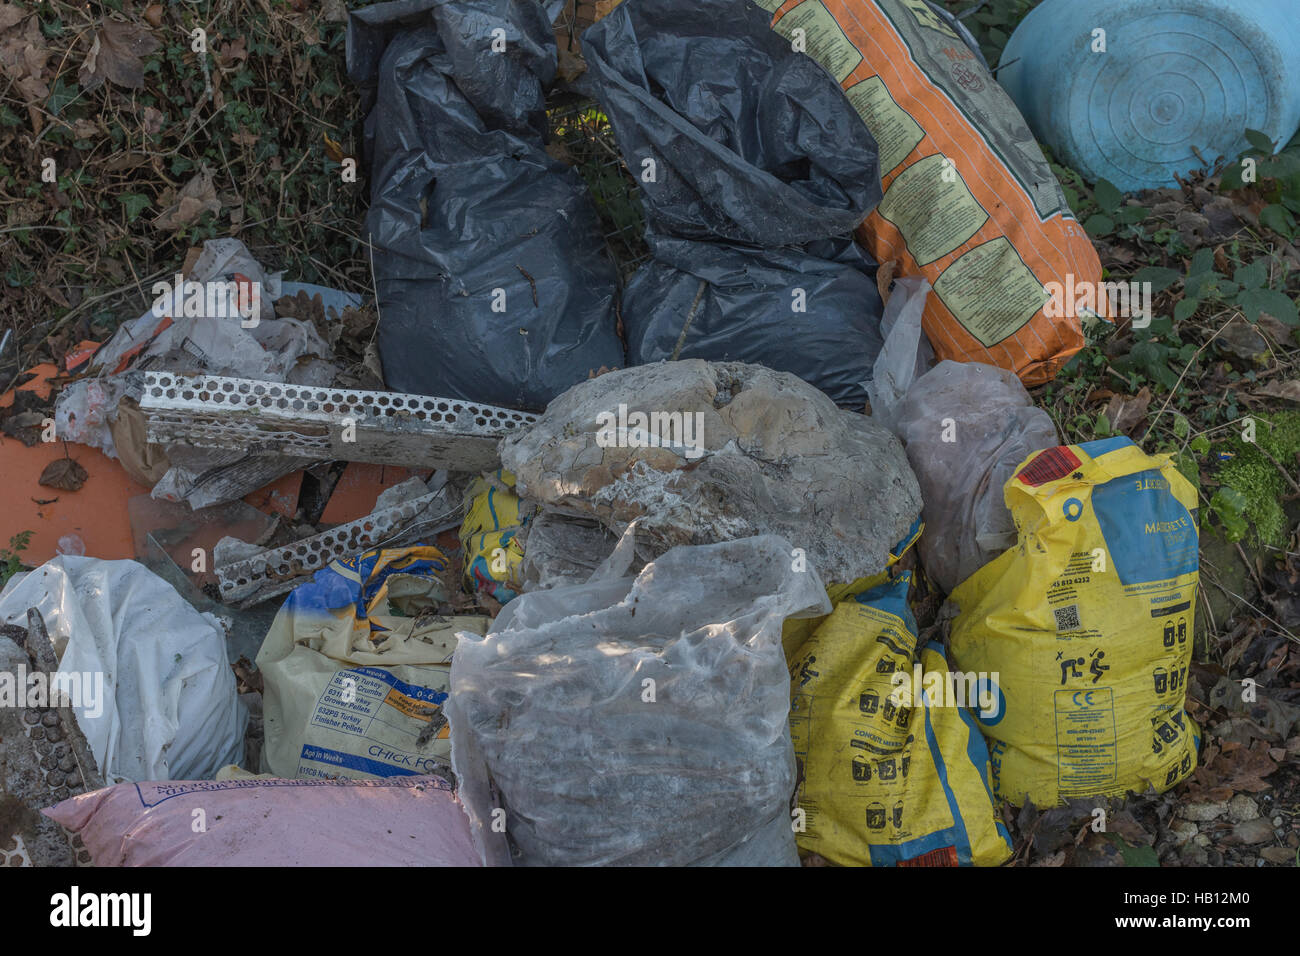 Fly-tipped bags of rubbish on the side of a country road. Metaphor environmental pollution, plastic rubbish. - Stock Image